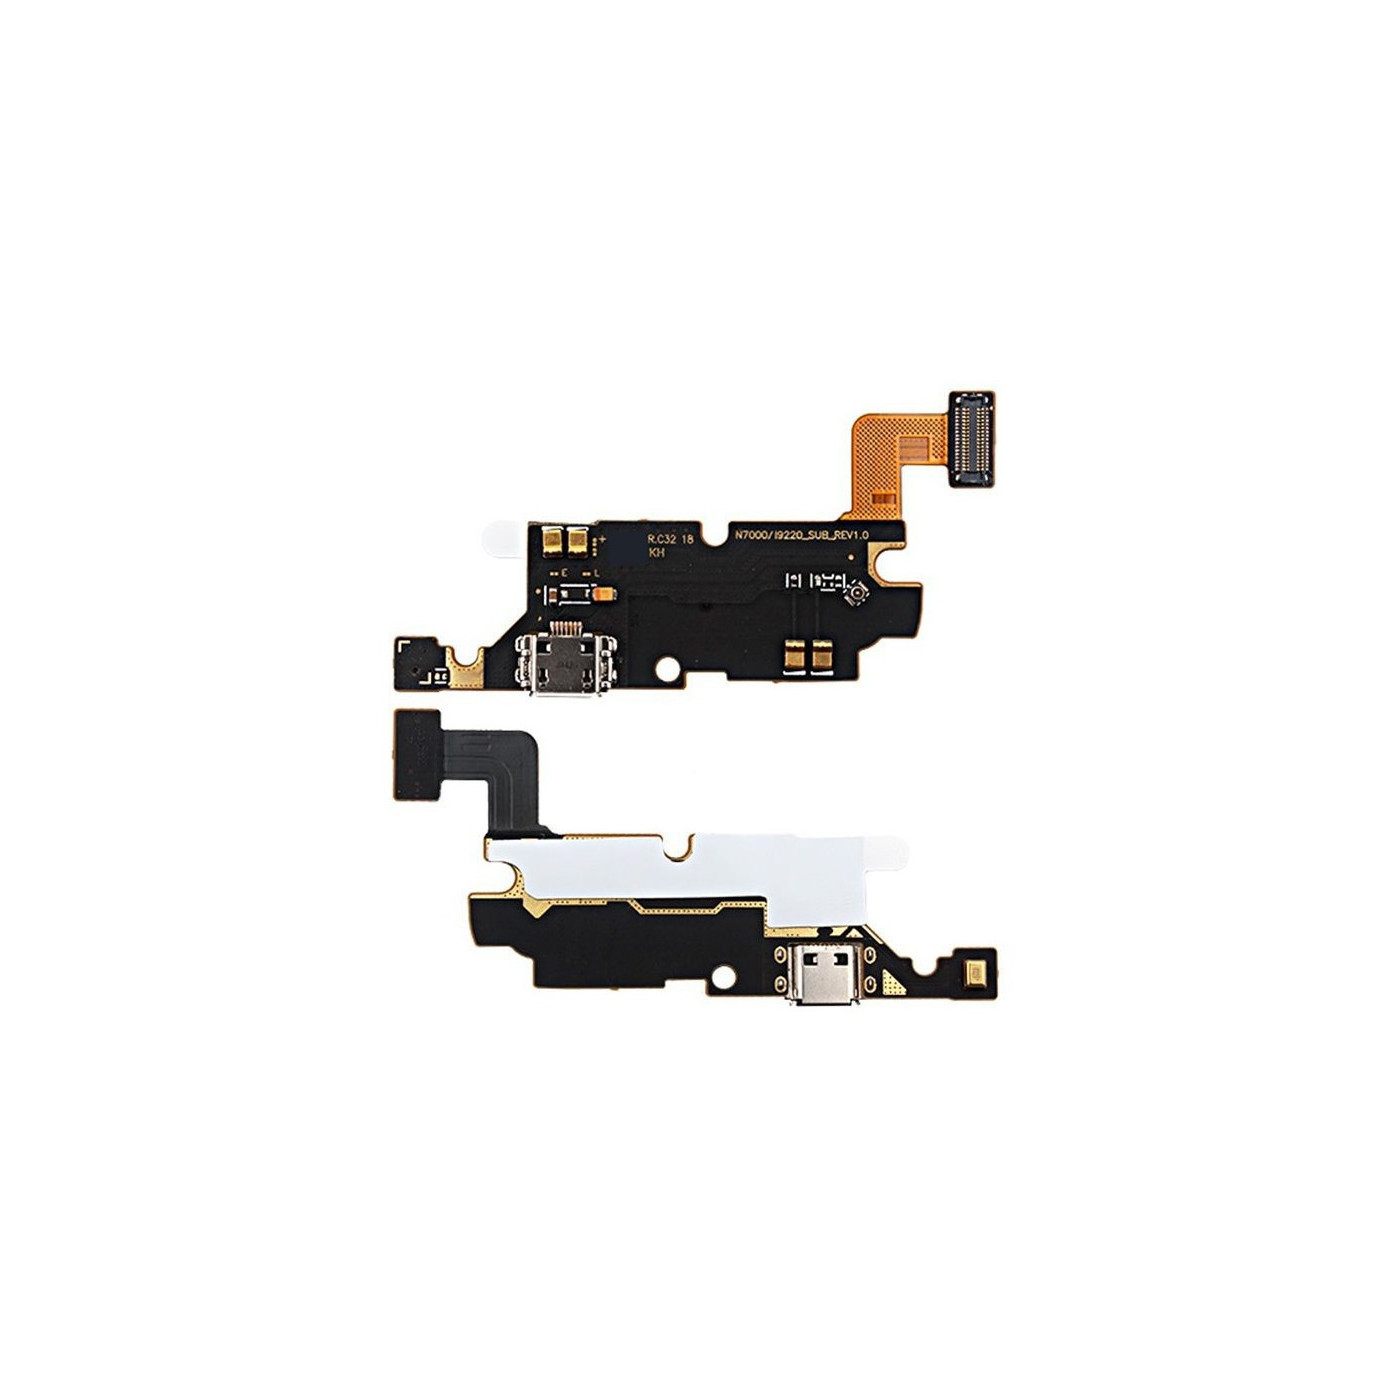 Connecteur de charge plat flexible pour Samsung Galaxy Note N7000